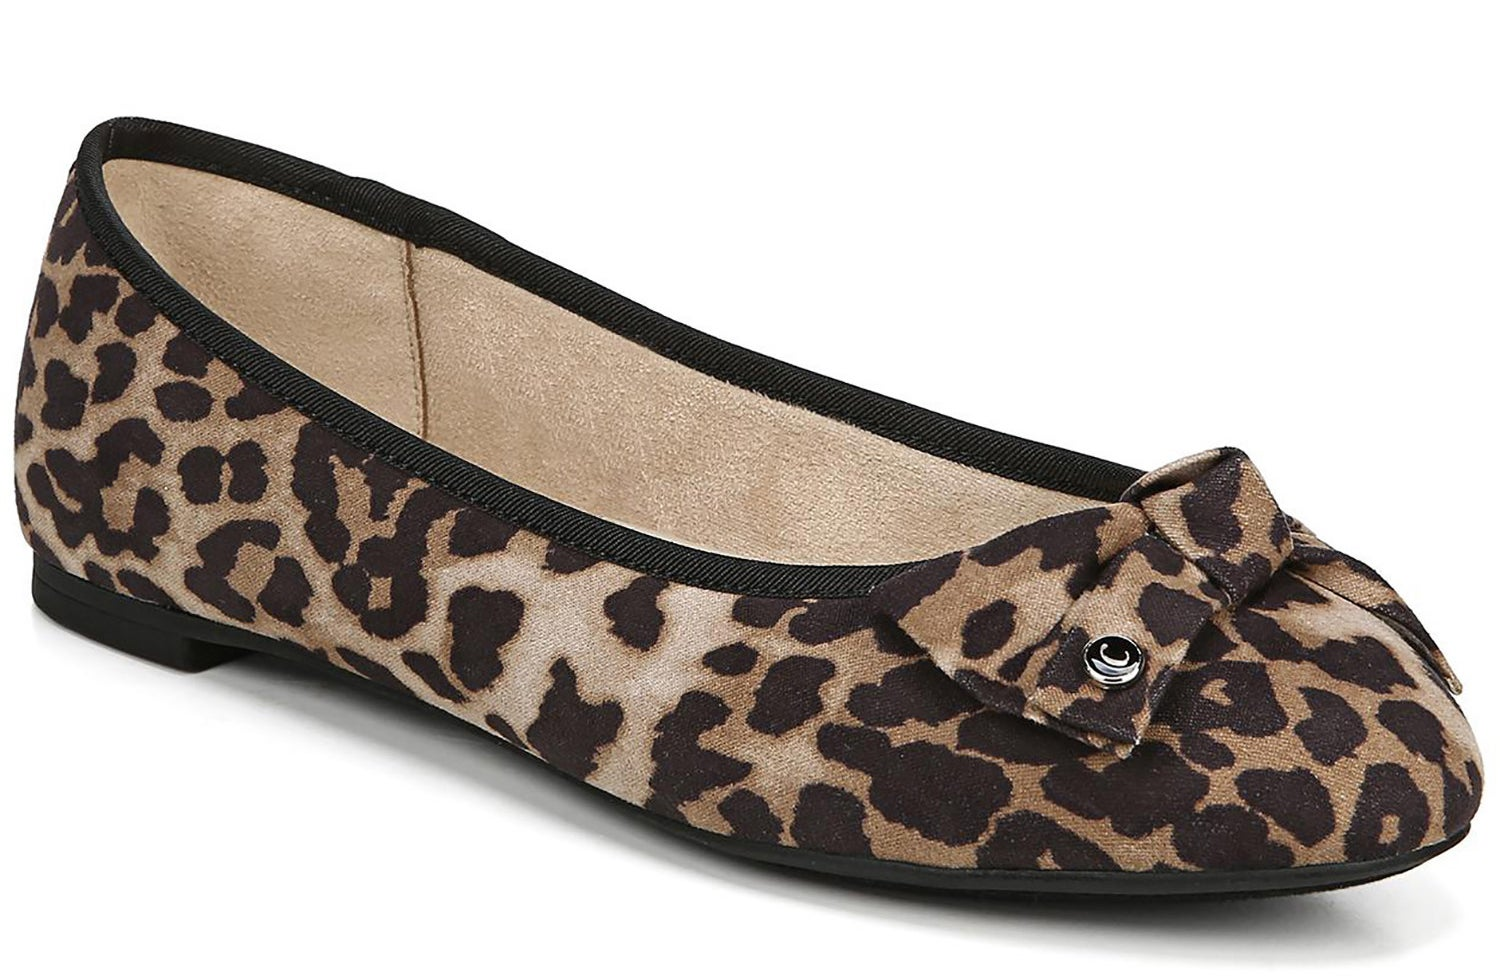 The flats in leopard print